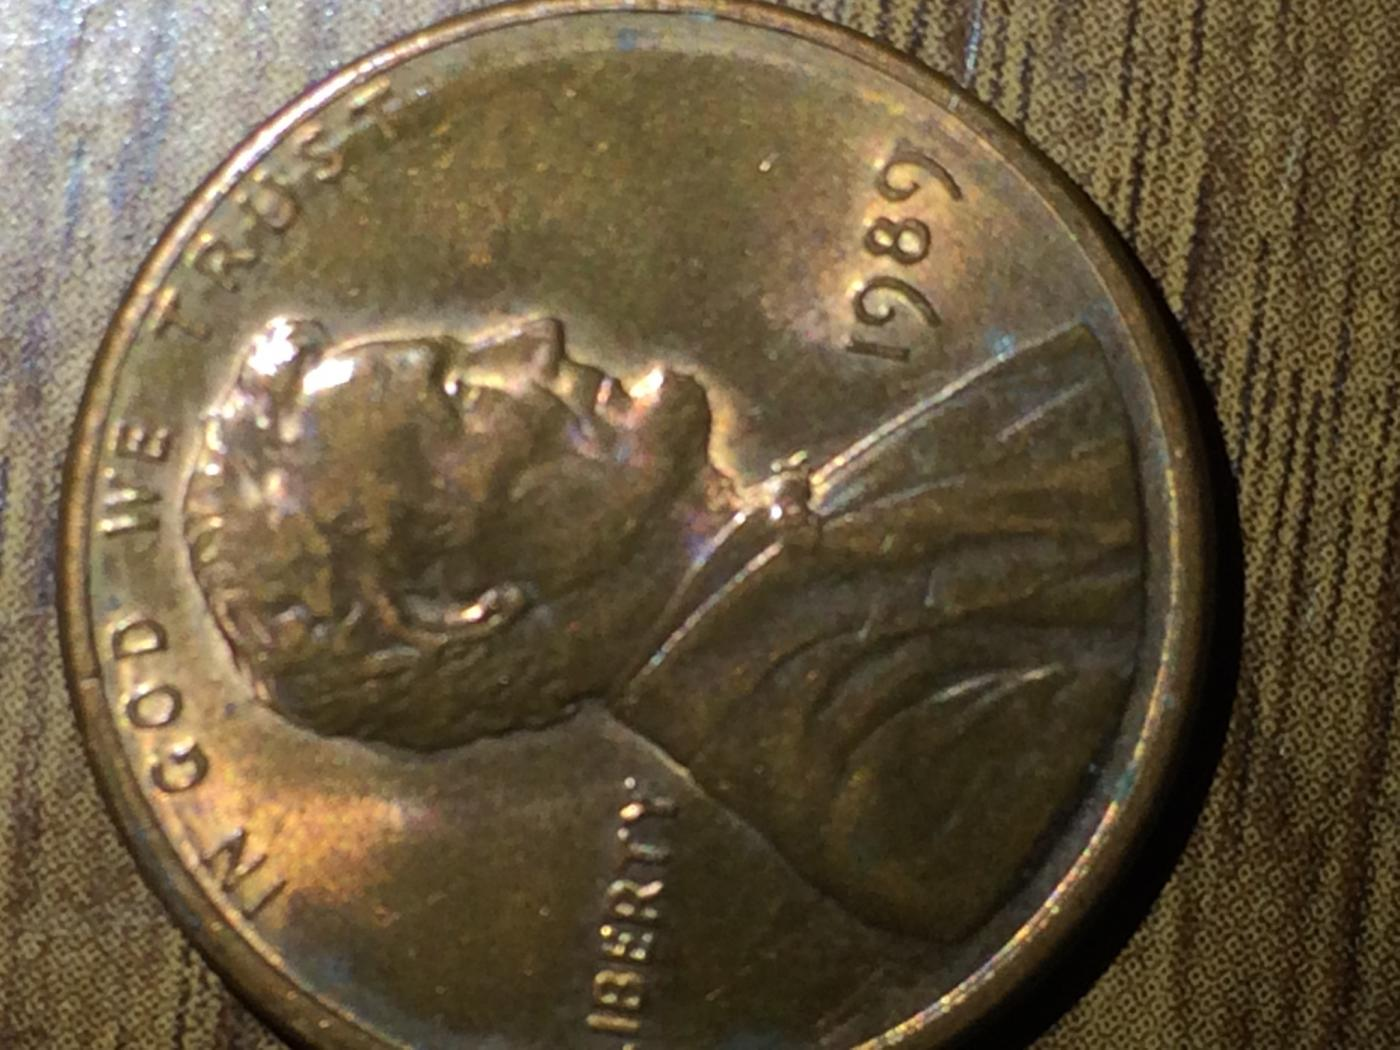 1989 Penny Error Coin – Wonderful Image Gallery